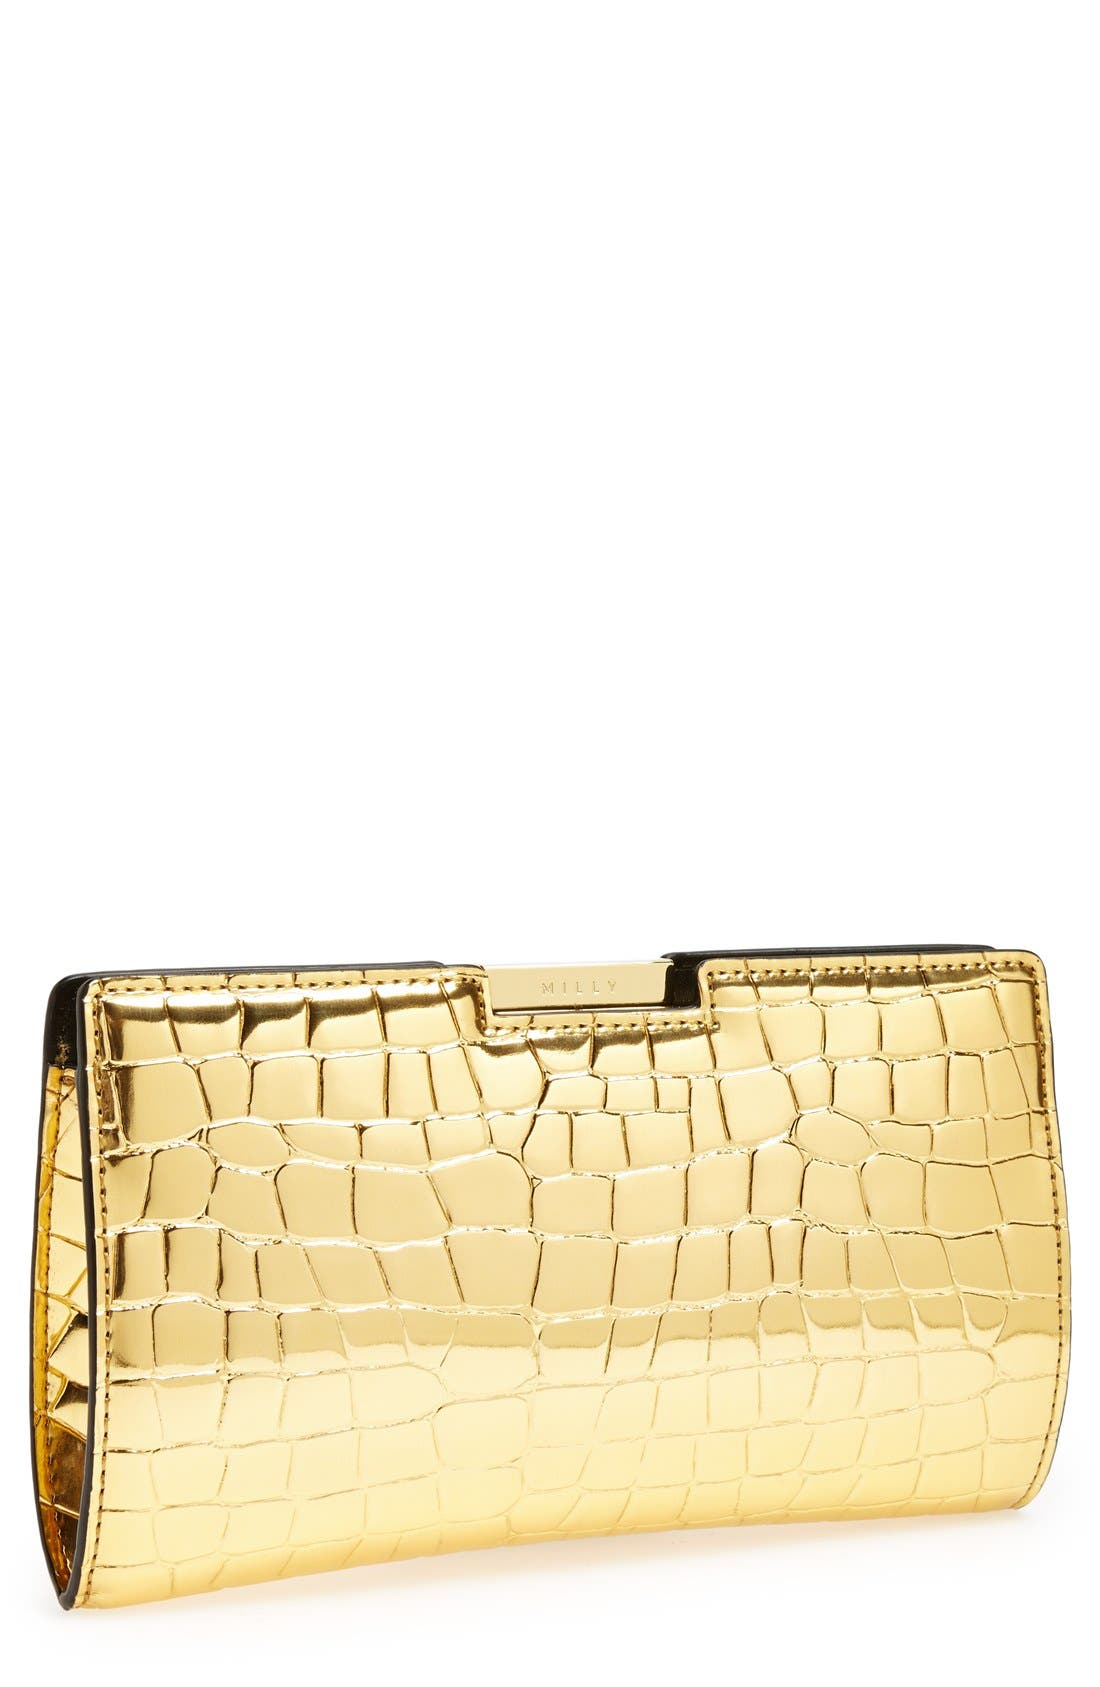 Alternate Image 1 Selected - Milly Croc Embossed Frame Clutch